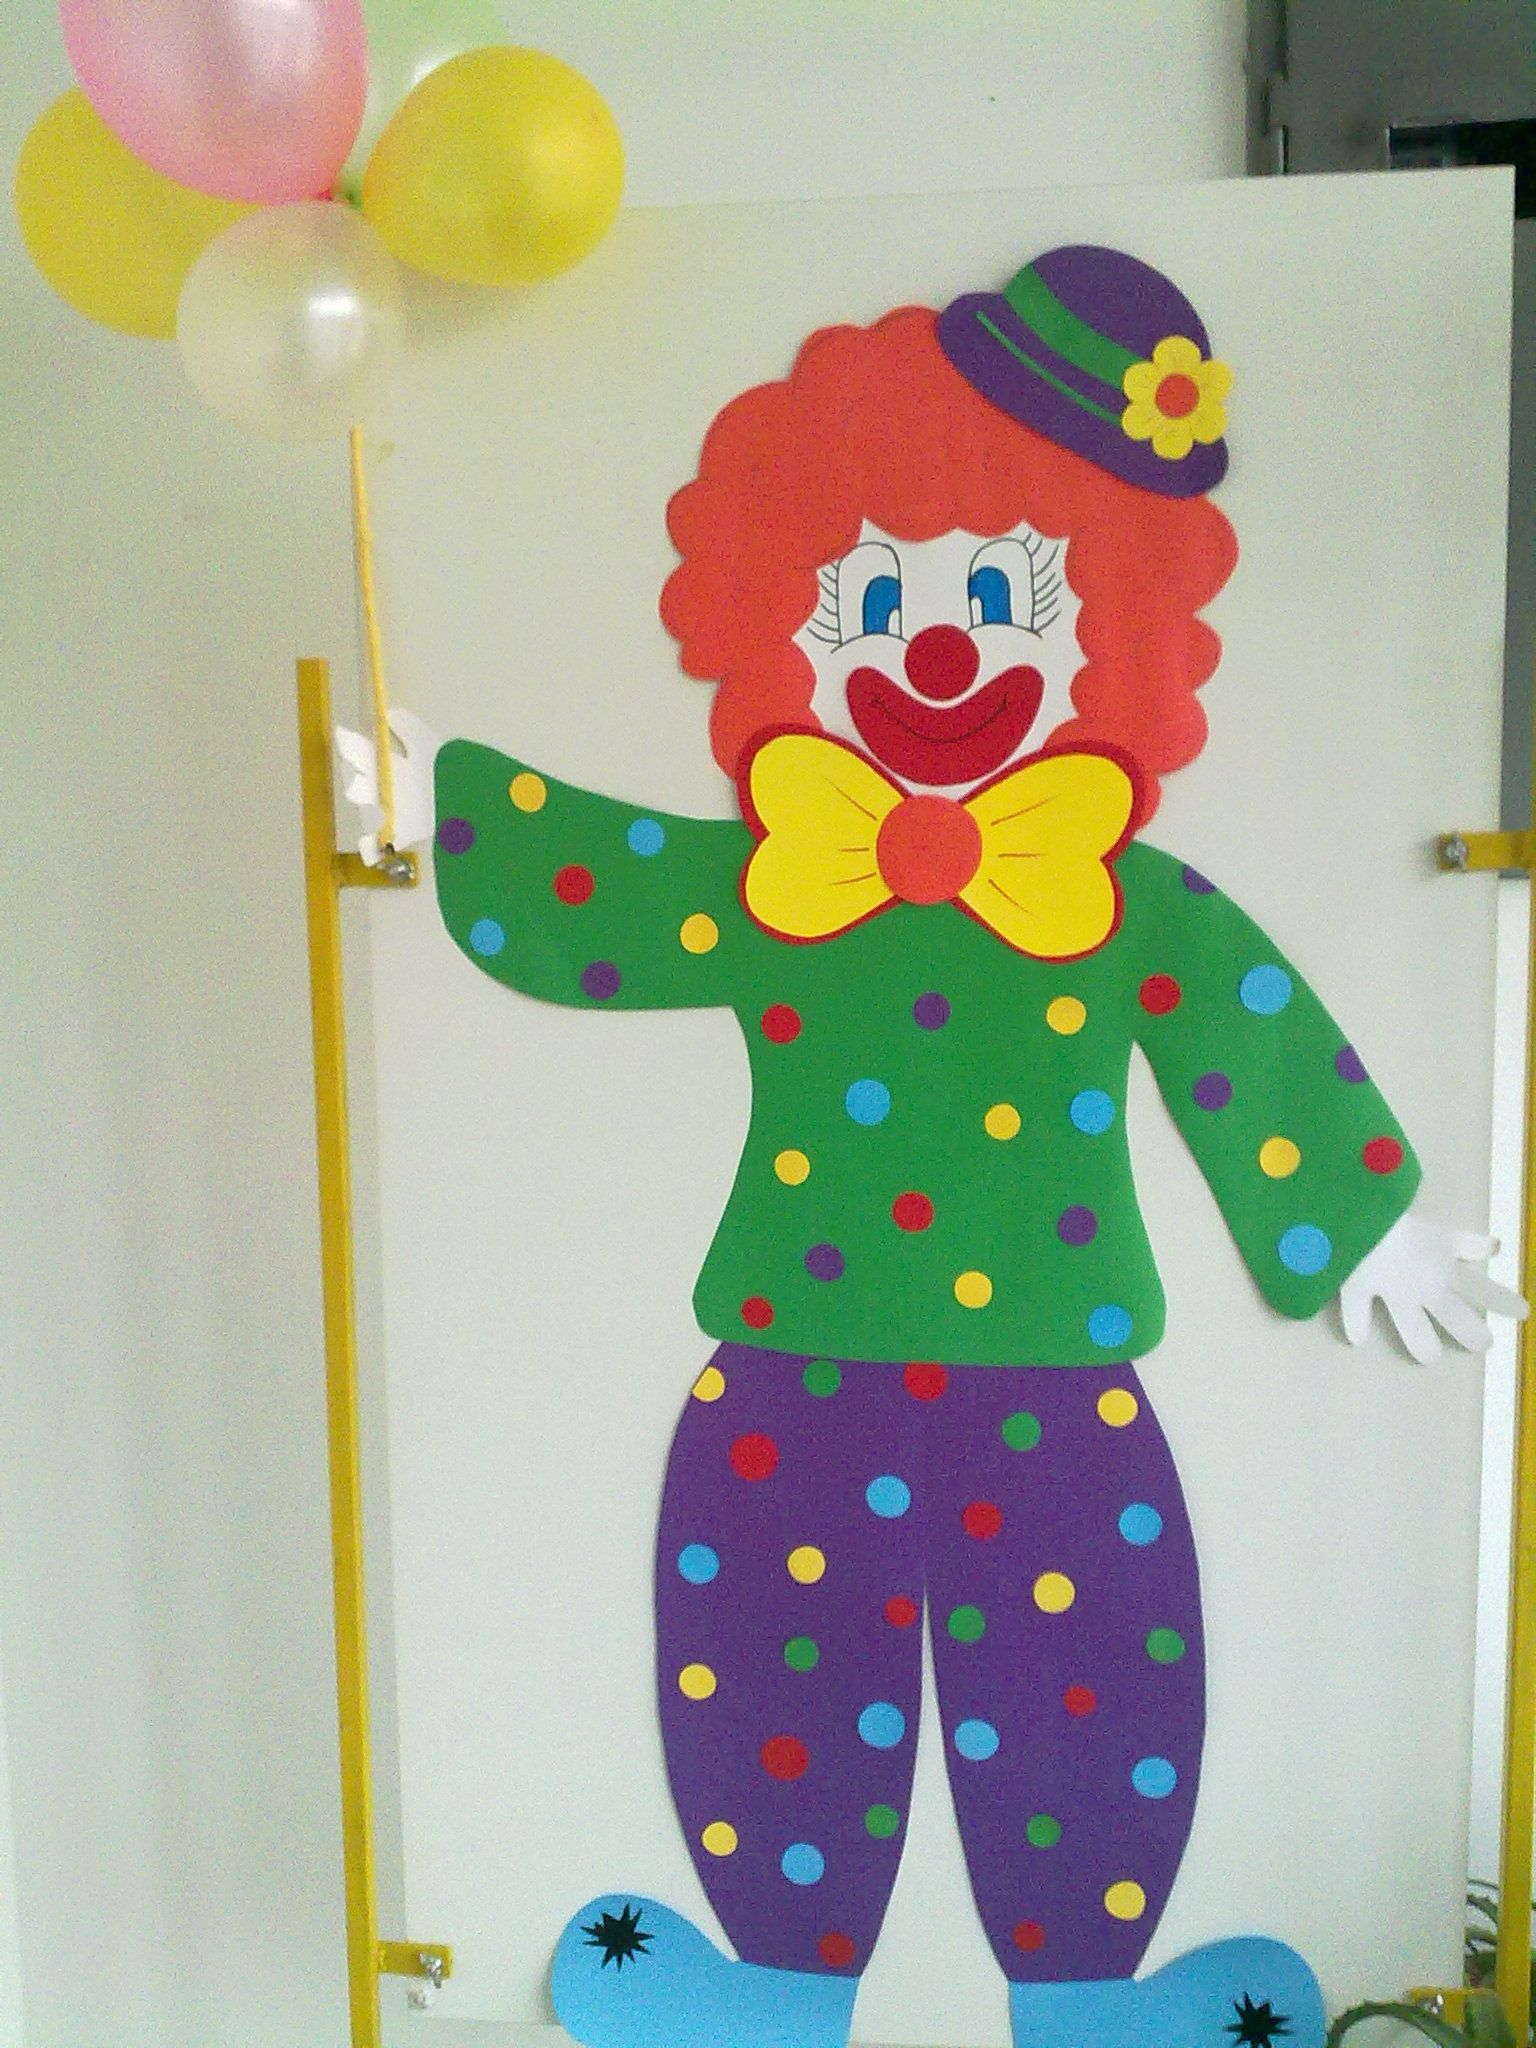 Colourful clown with balloons my school crafts for Clown dekoration